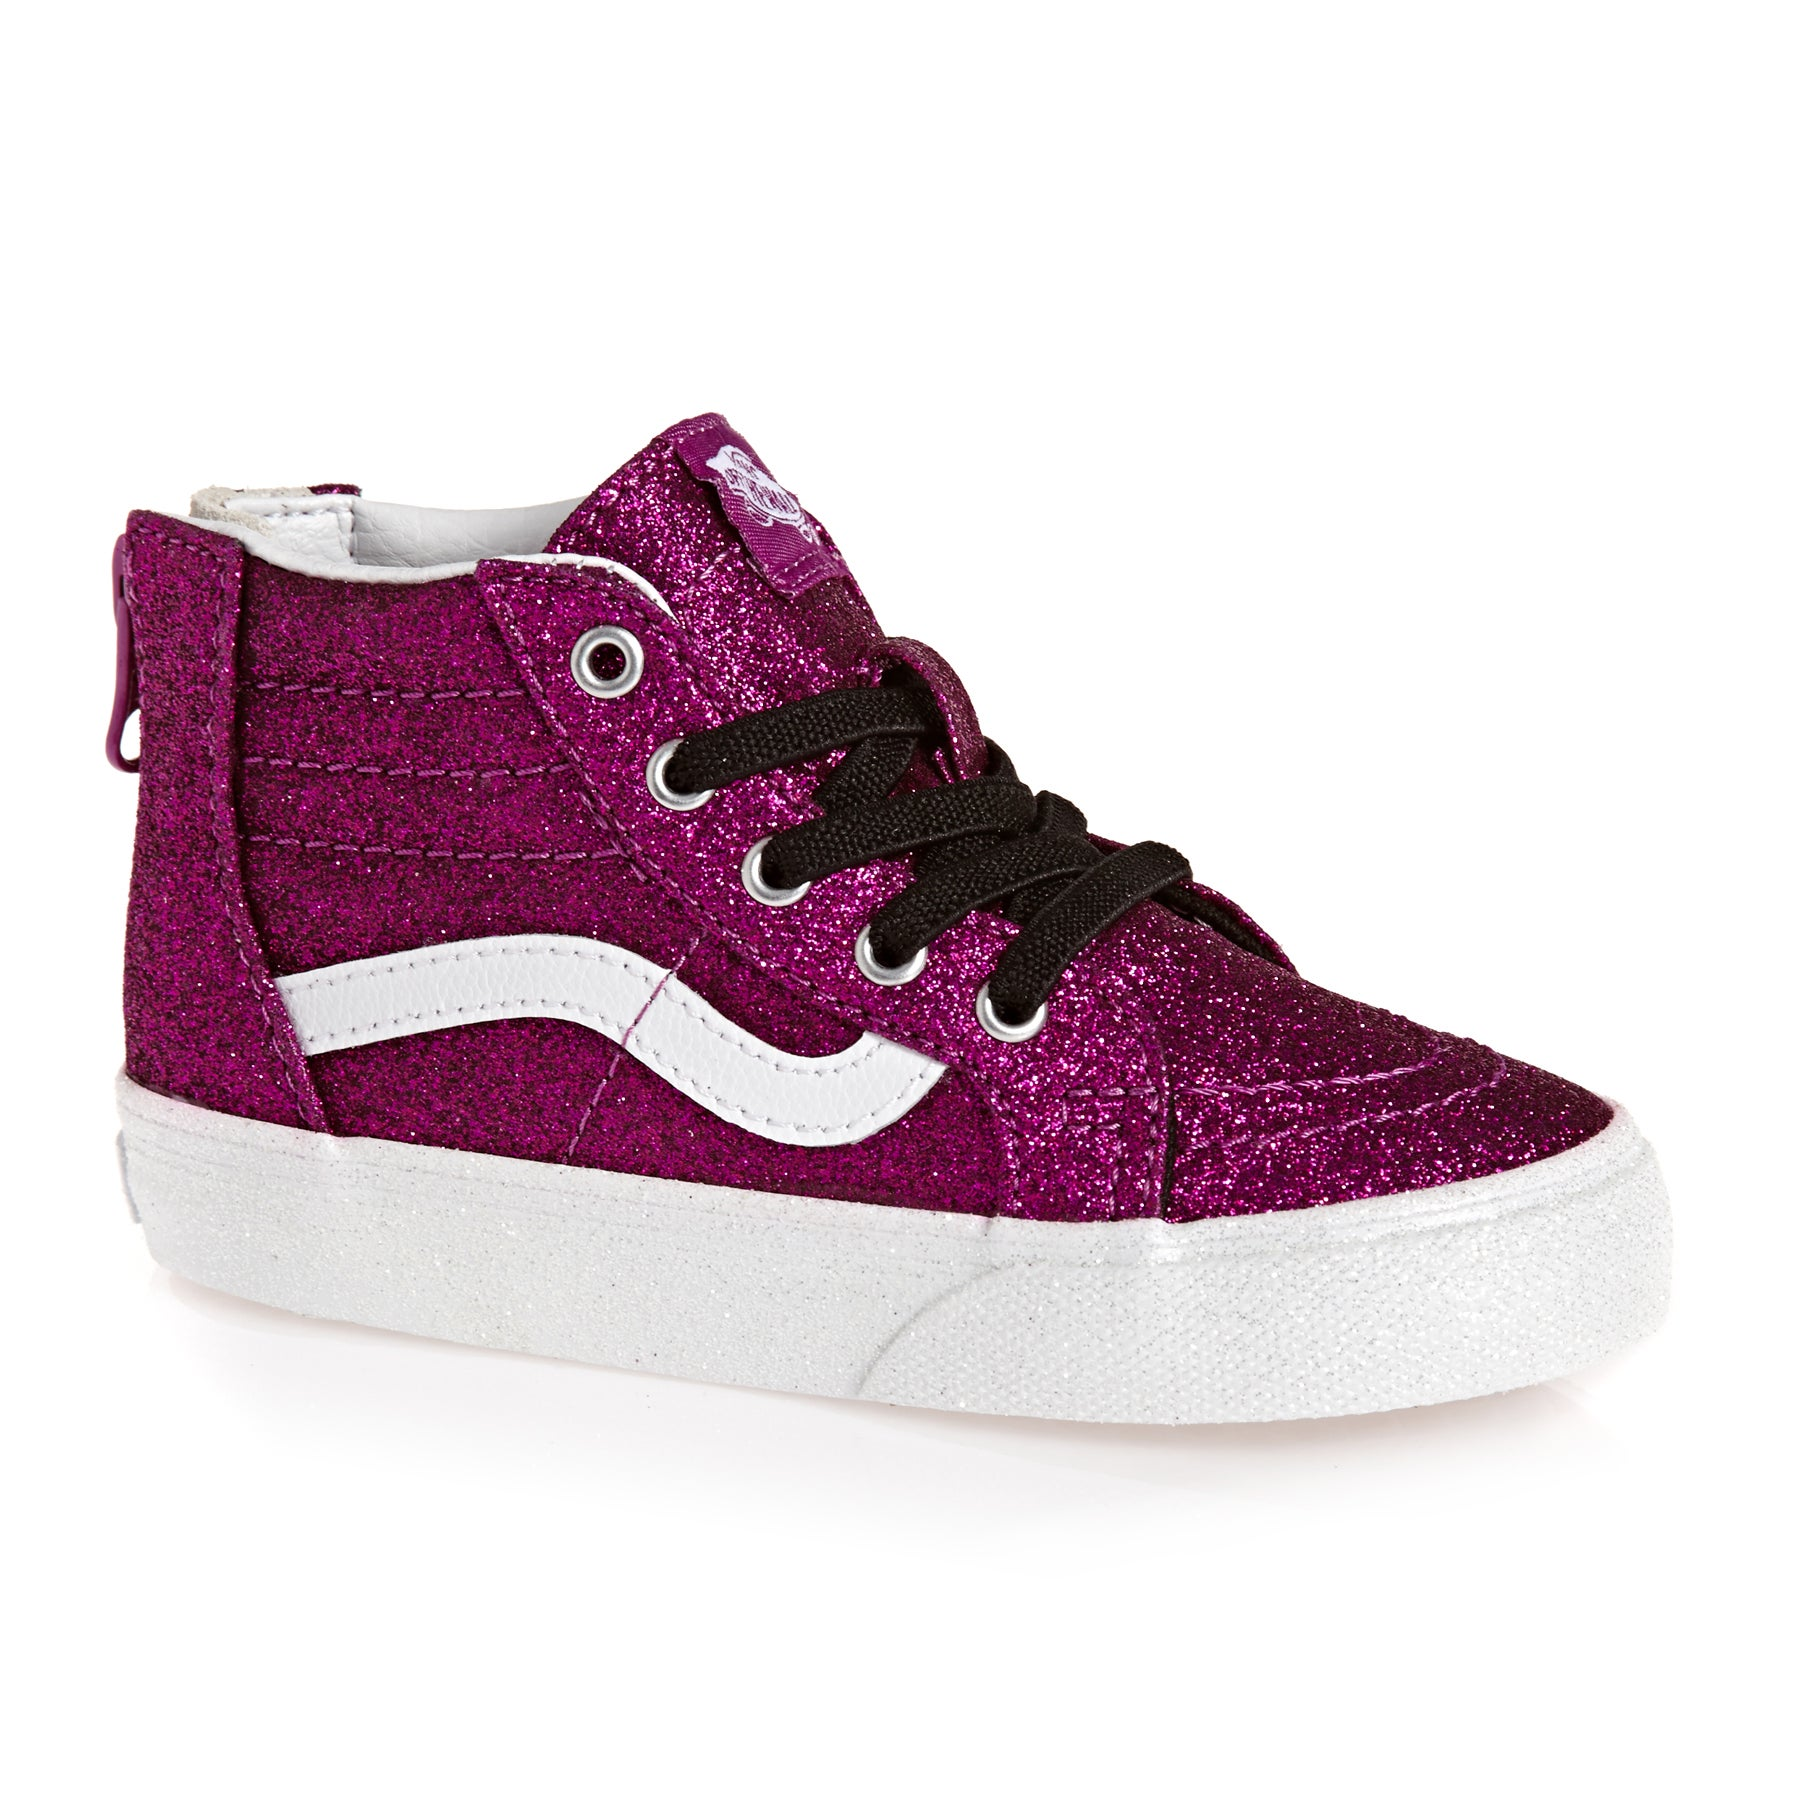 b616367ab6 Vans Sk8 Hi Zip Glitter Kids Footwear Toddler Trainers - Wild Aster ...